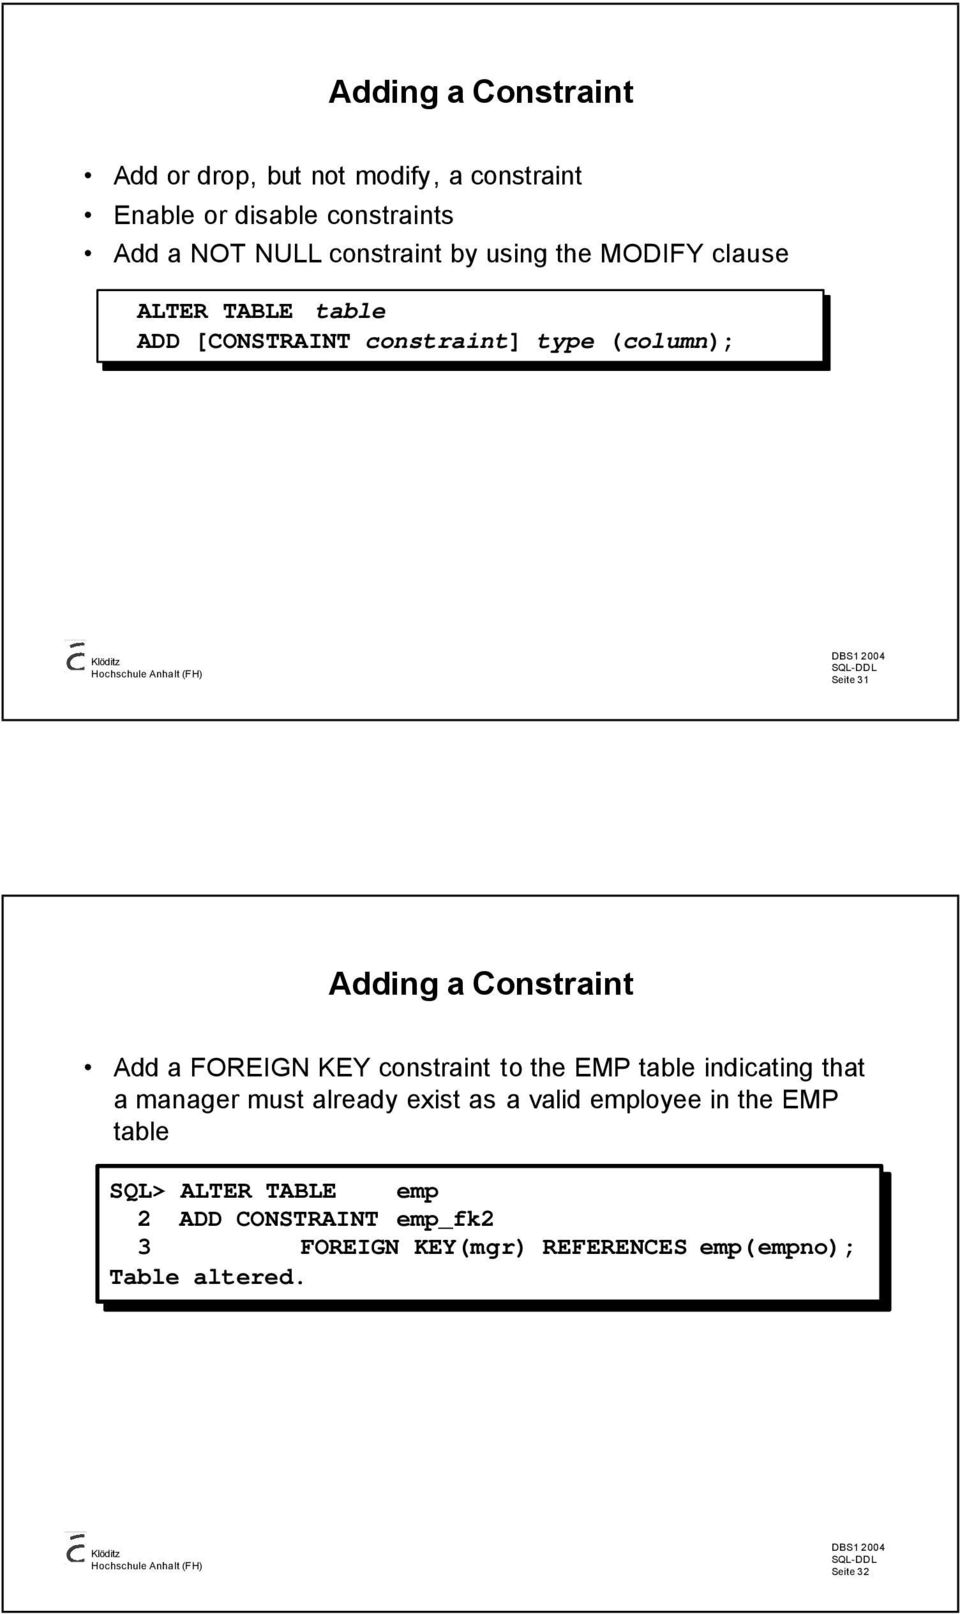 Add a FOREIGN KEY constraint to the EMP table indicating that a manager must already exist as a valid employee in the